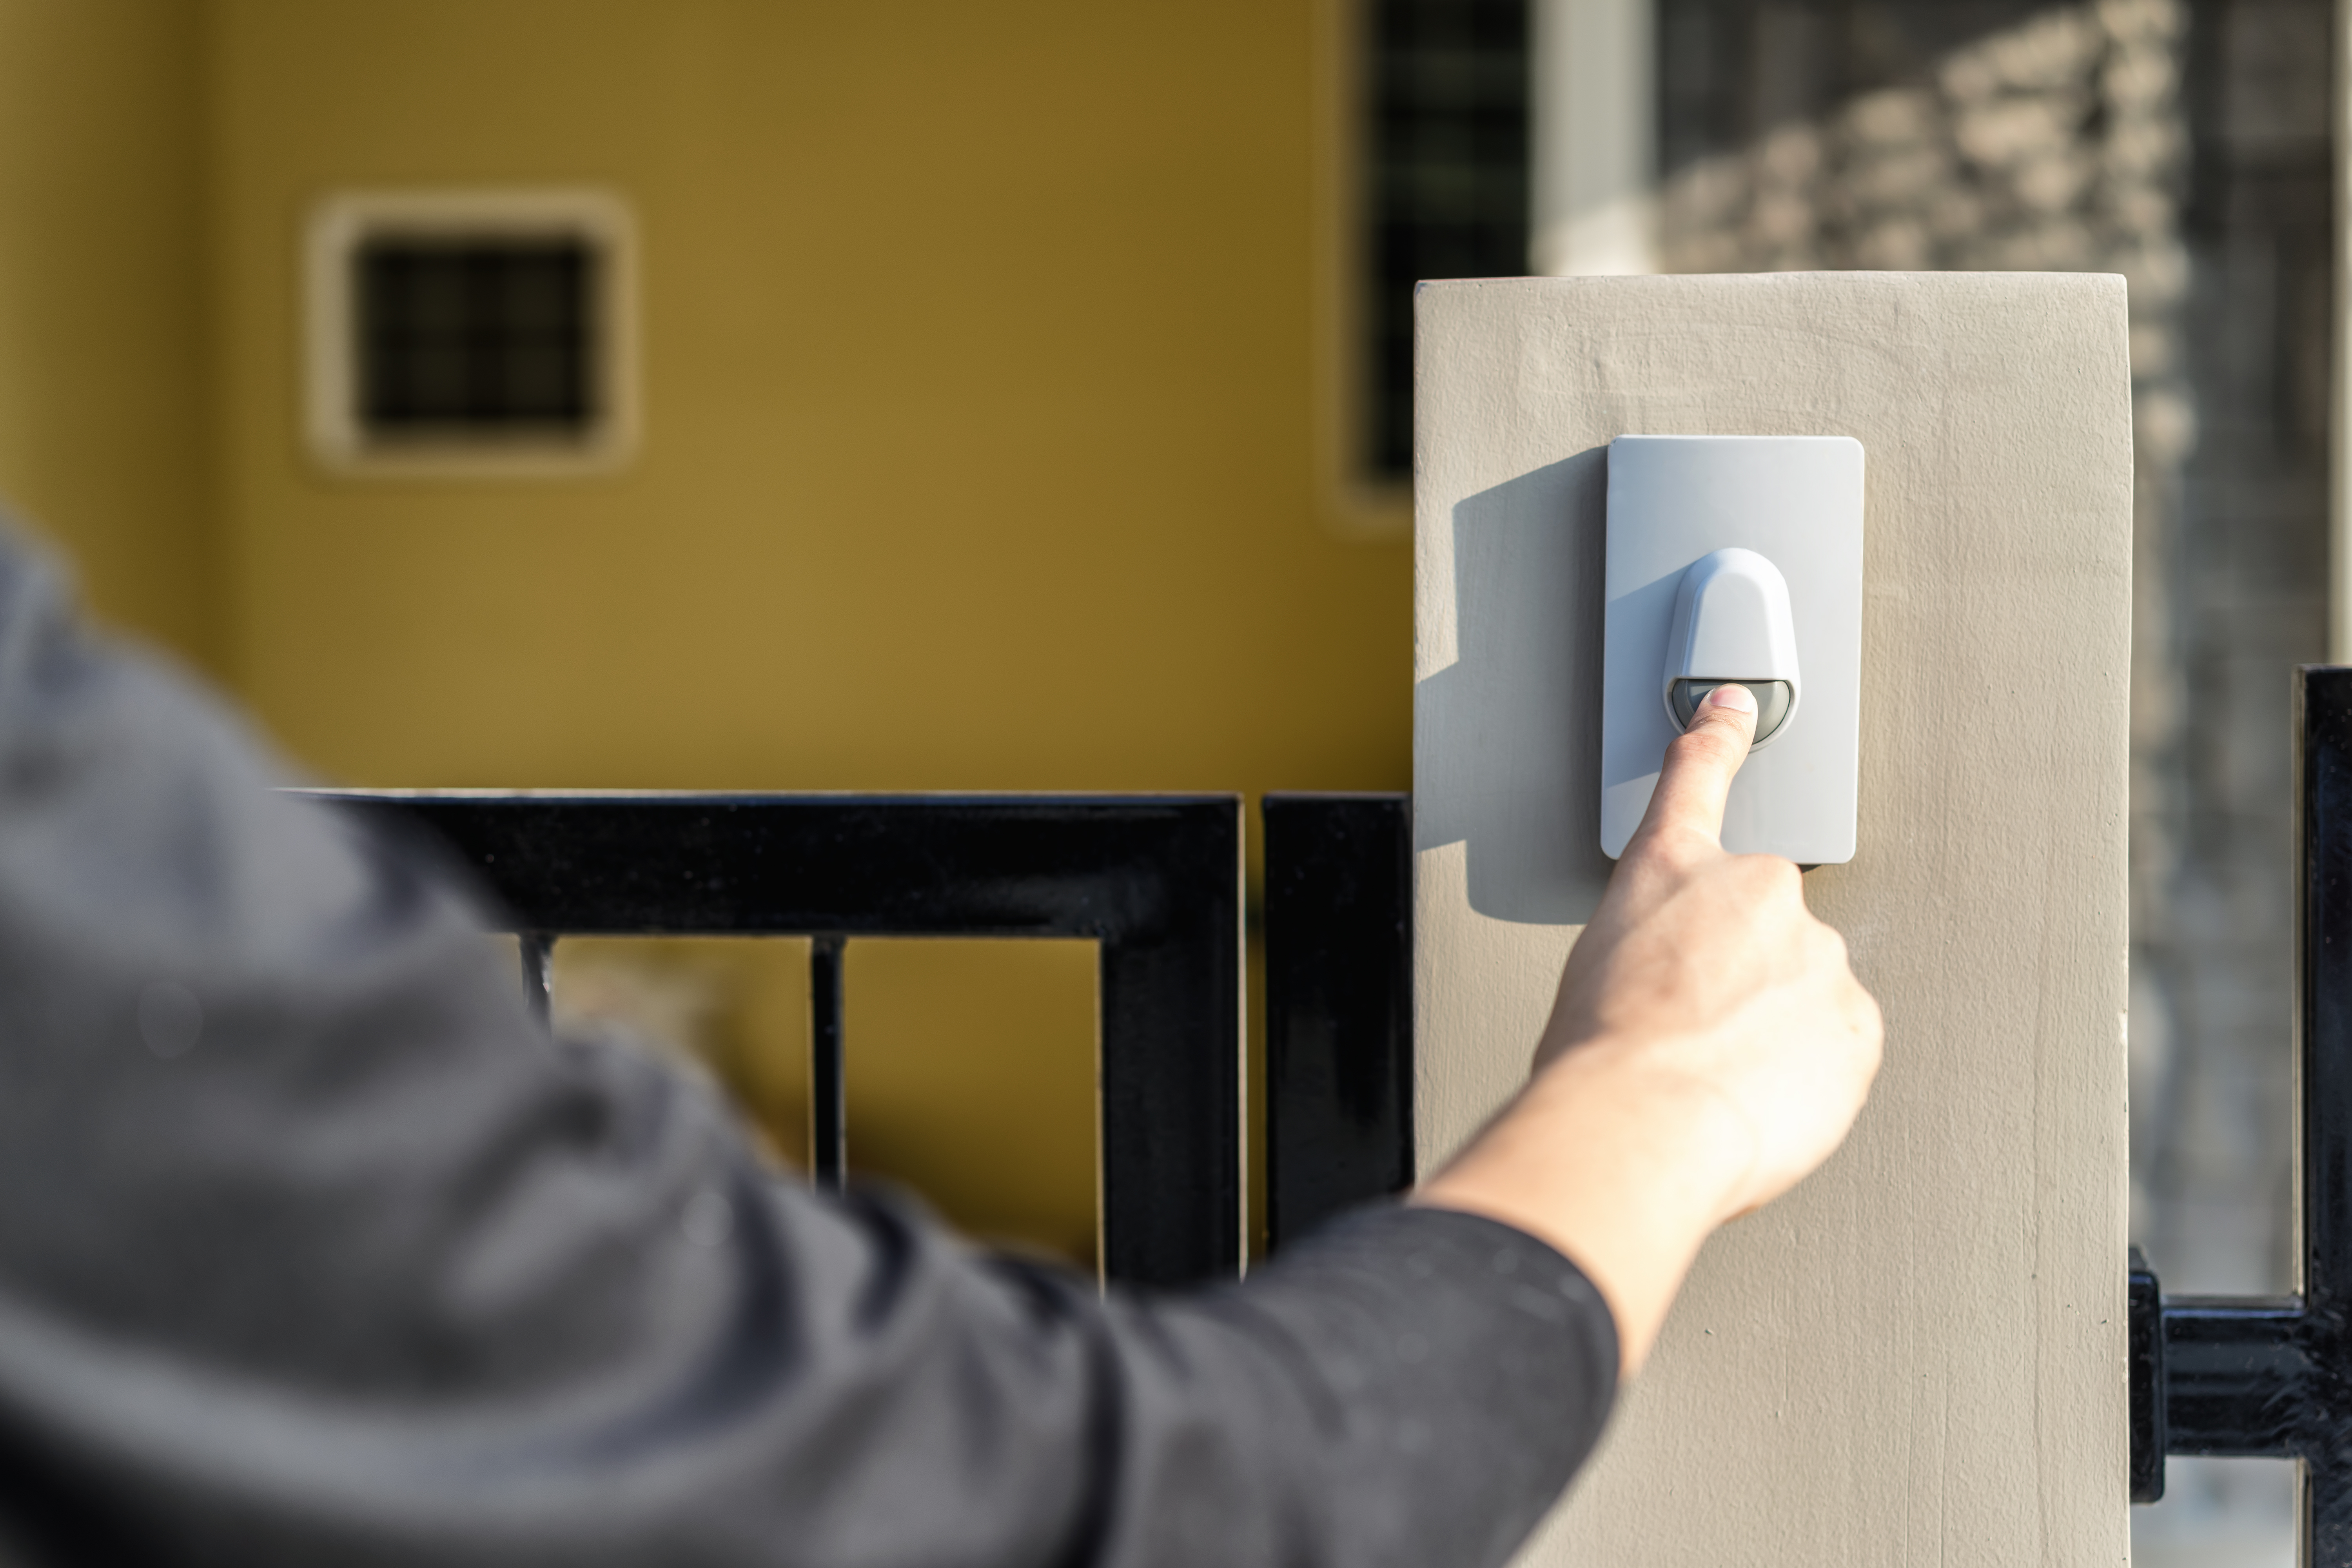 Why Would a Doorbell Ring by Itself? | Home Guides | SF Gate